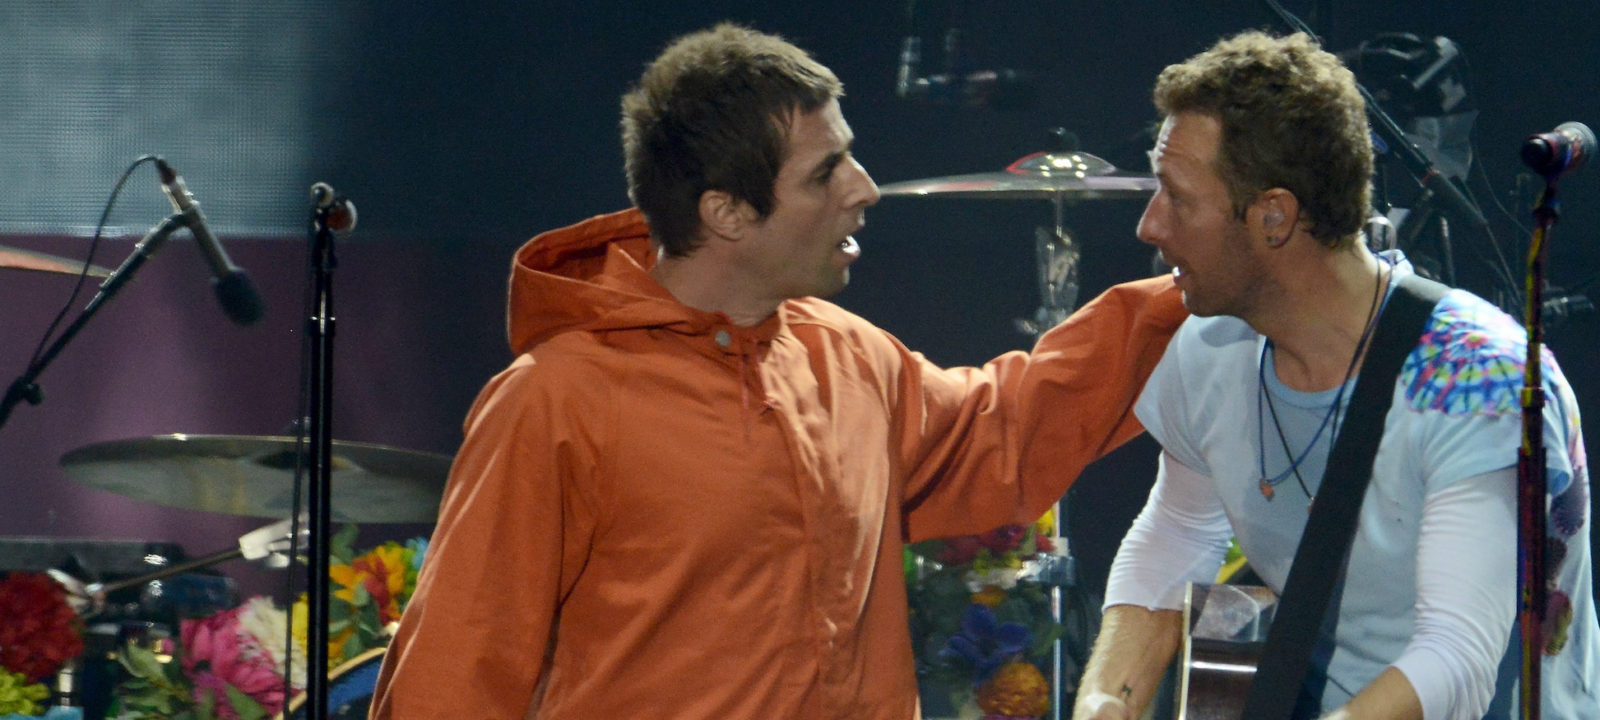 MANCHESTER, ENGLAND – JUNE 04:  NO SALES, free for editorial use. In this handout provided by 'One Love Manchester' benefit concert (L) Liam Gallagher and Chris Martin perform on stage on June 4, 2017 in Manchester, England. Donate at www.redcross.org.uk/love